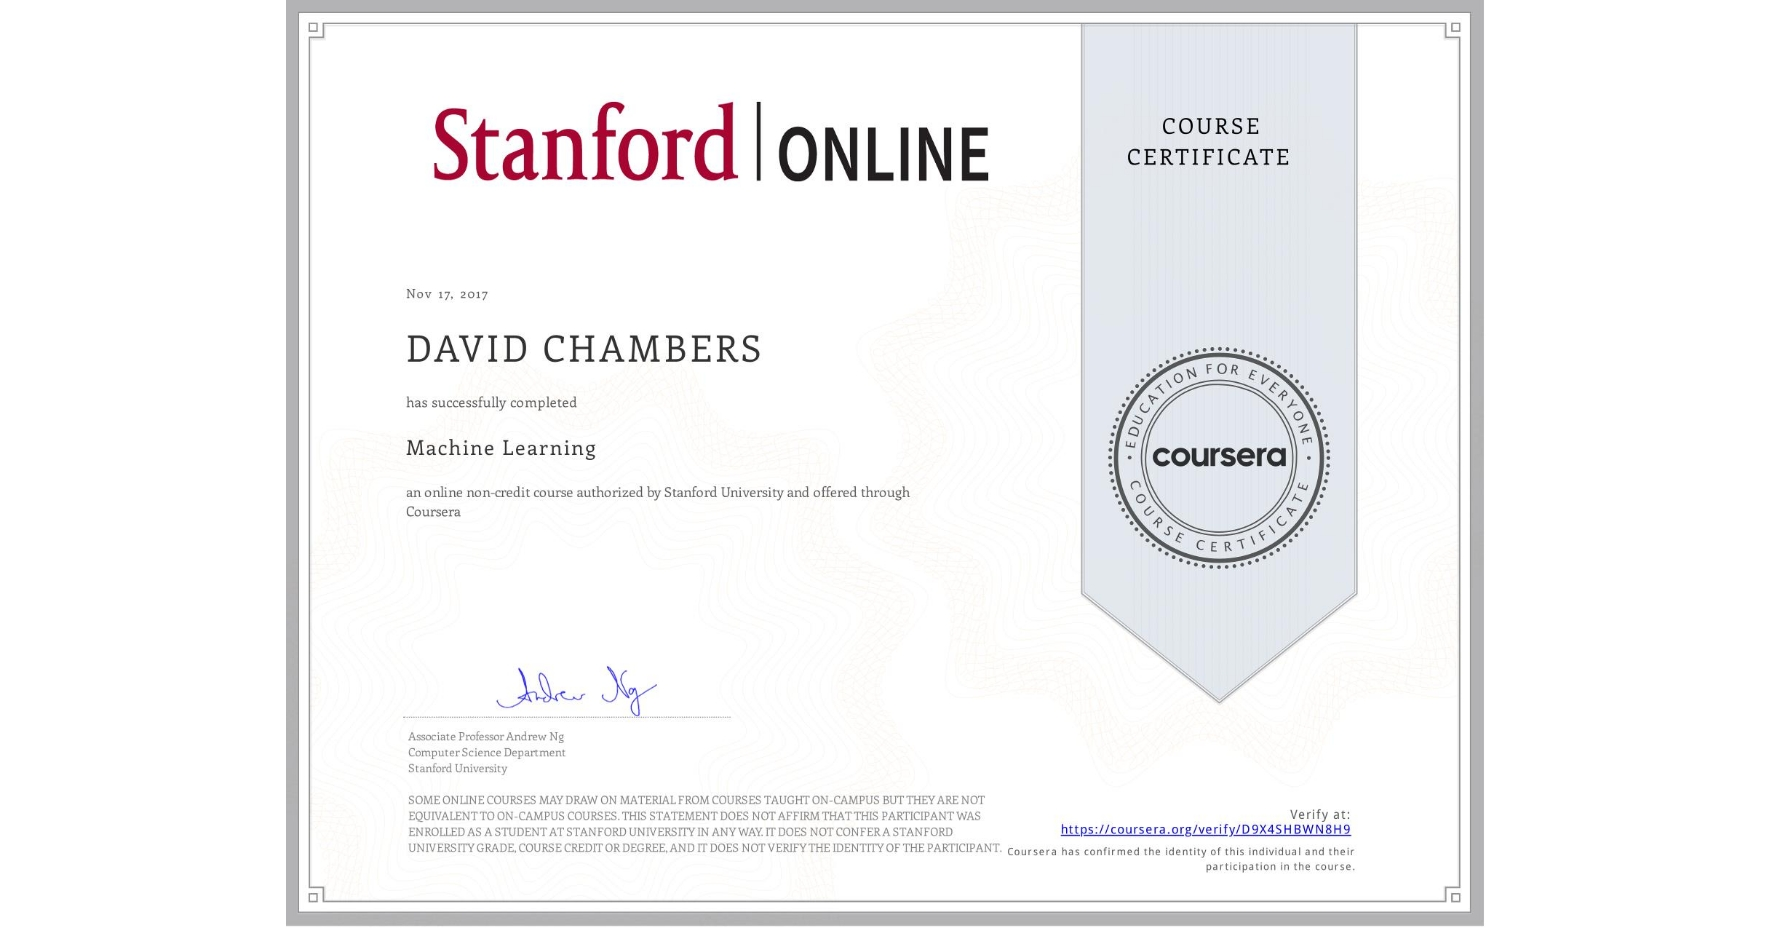 View certificate for DAVID CHAMBERS, Machine Learning, an online non-credit course authorized by Stanford University and offered through Coursera